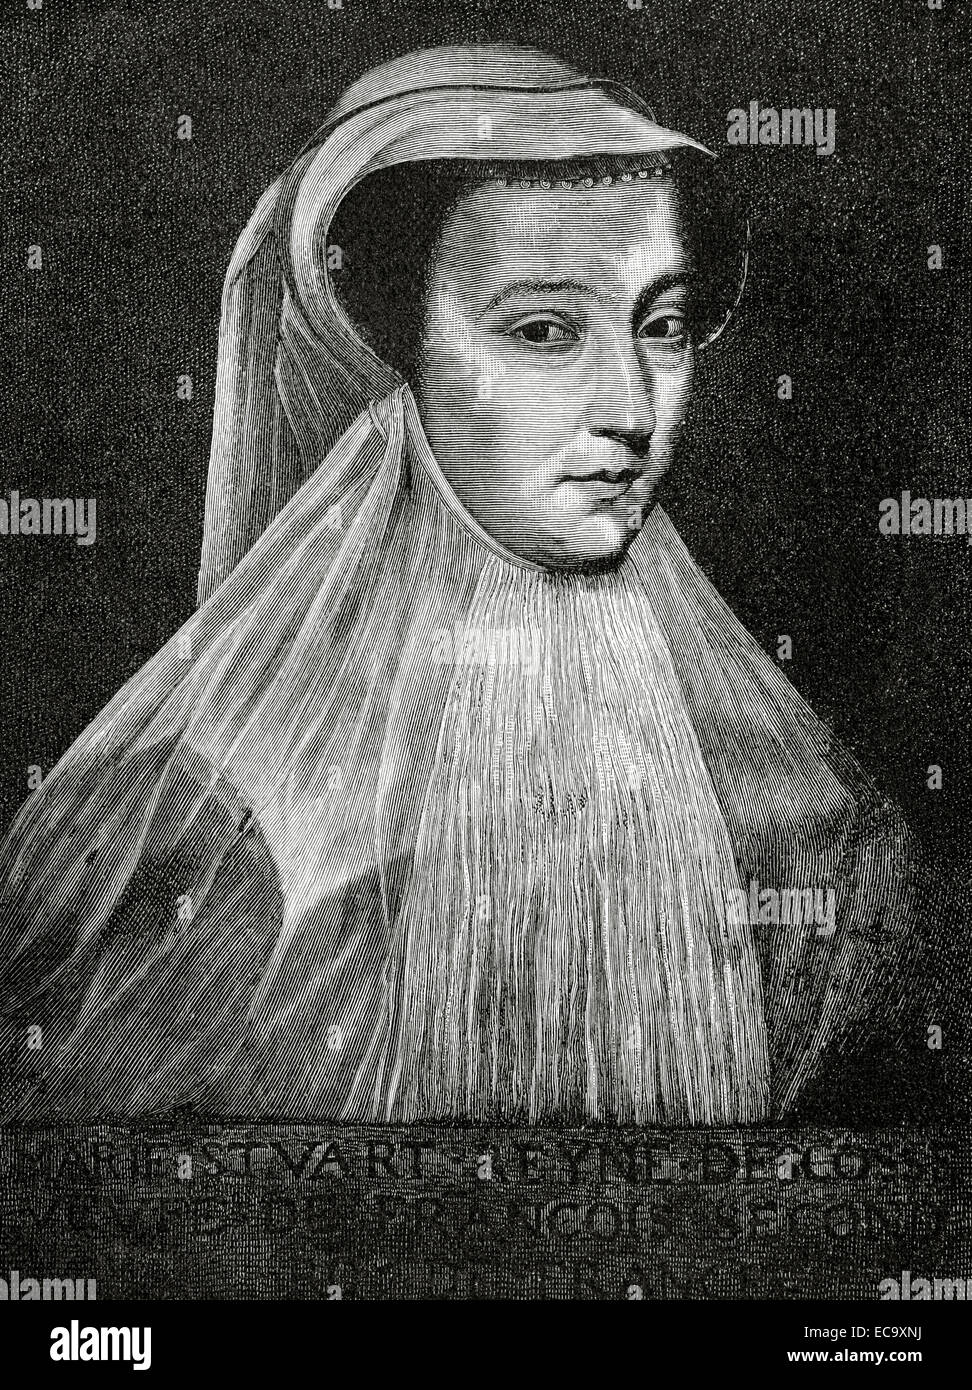 Mary, Queen of Scots (1542-1587). Queen of Scotland and Queen consort of France. Engraving by E. Krell. Historia - Stock Image